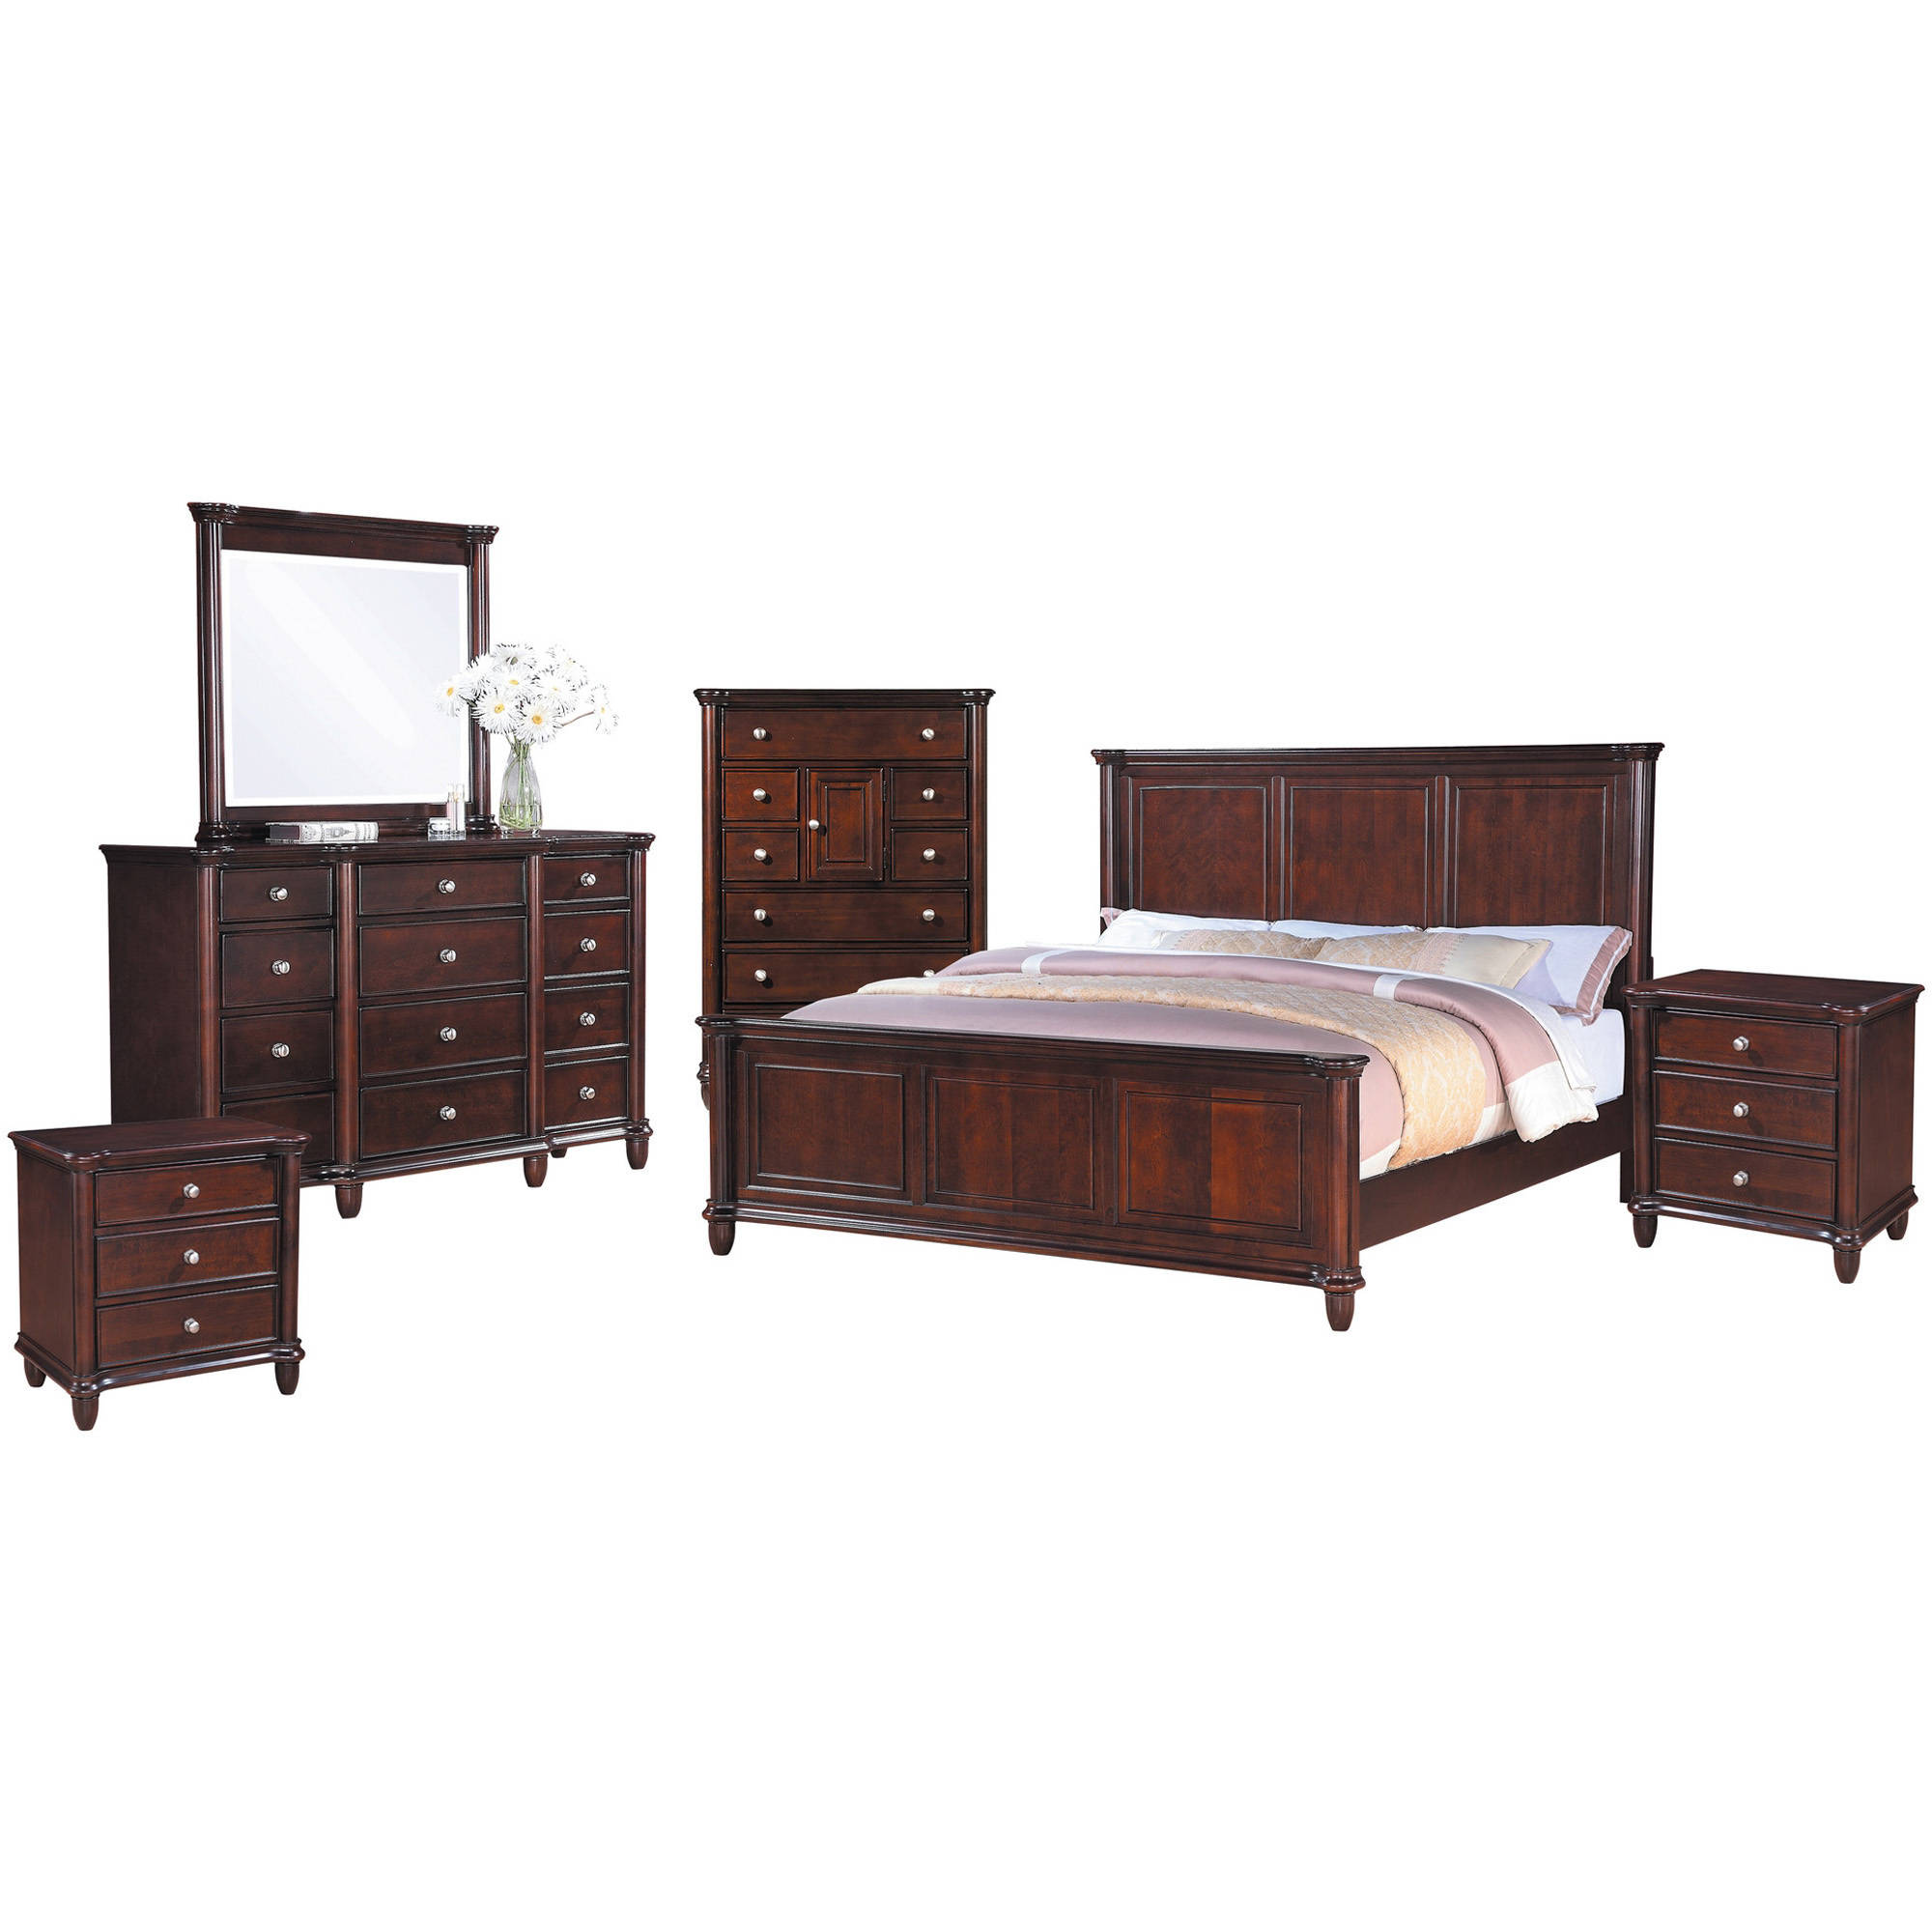 Picket House Furnishings Gavin Panel Bedroom Set, Multiple Sizes and Configurations, King, 6 Piece Set